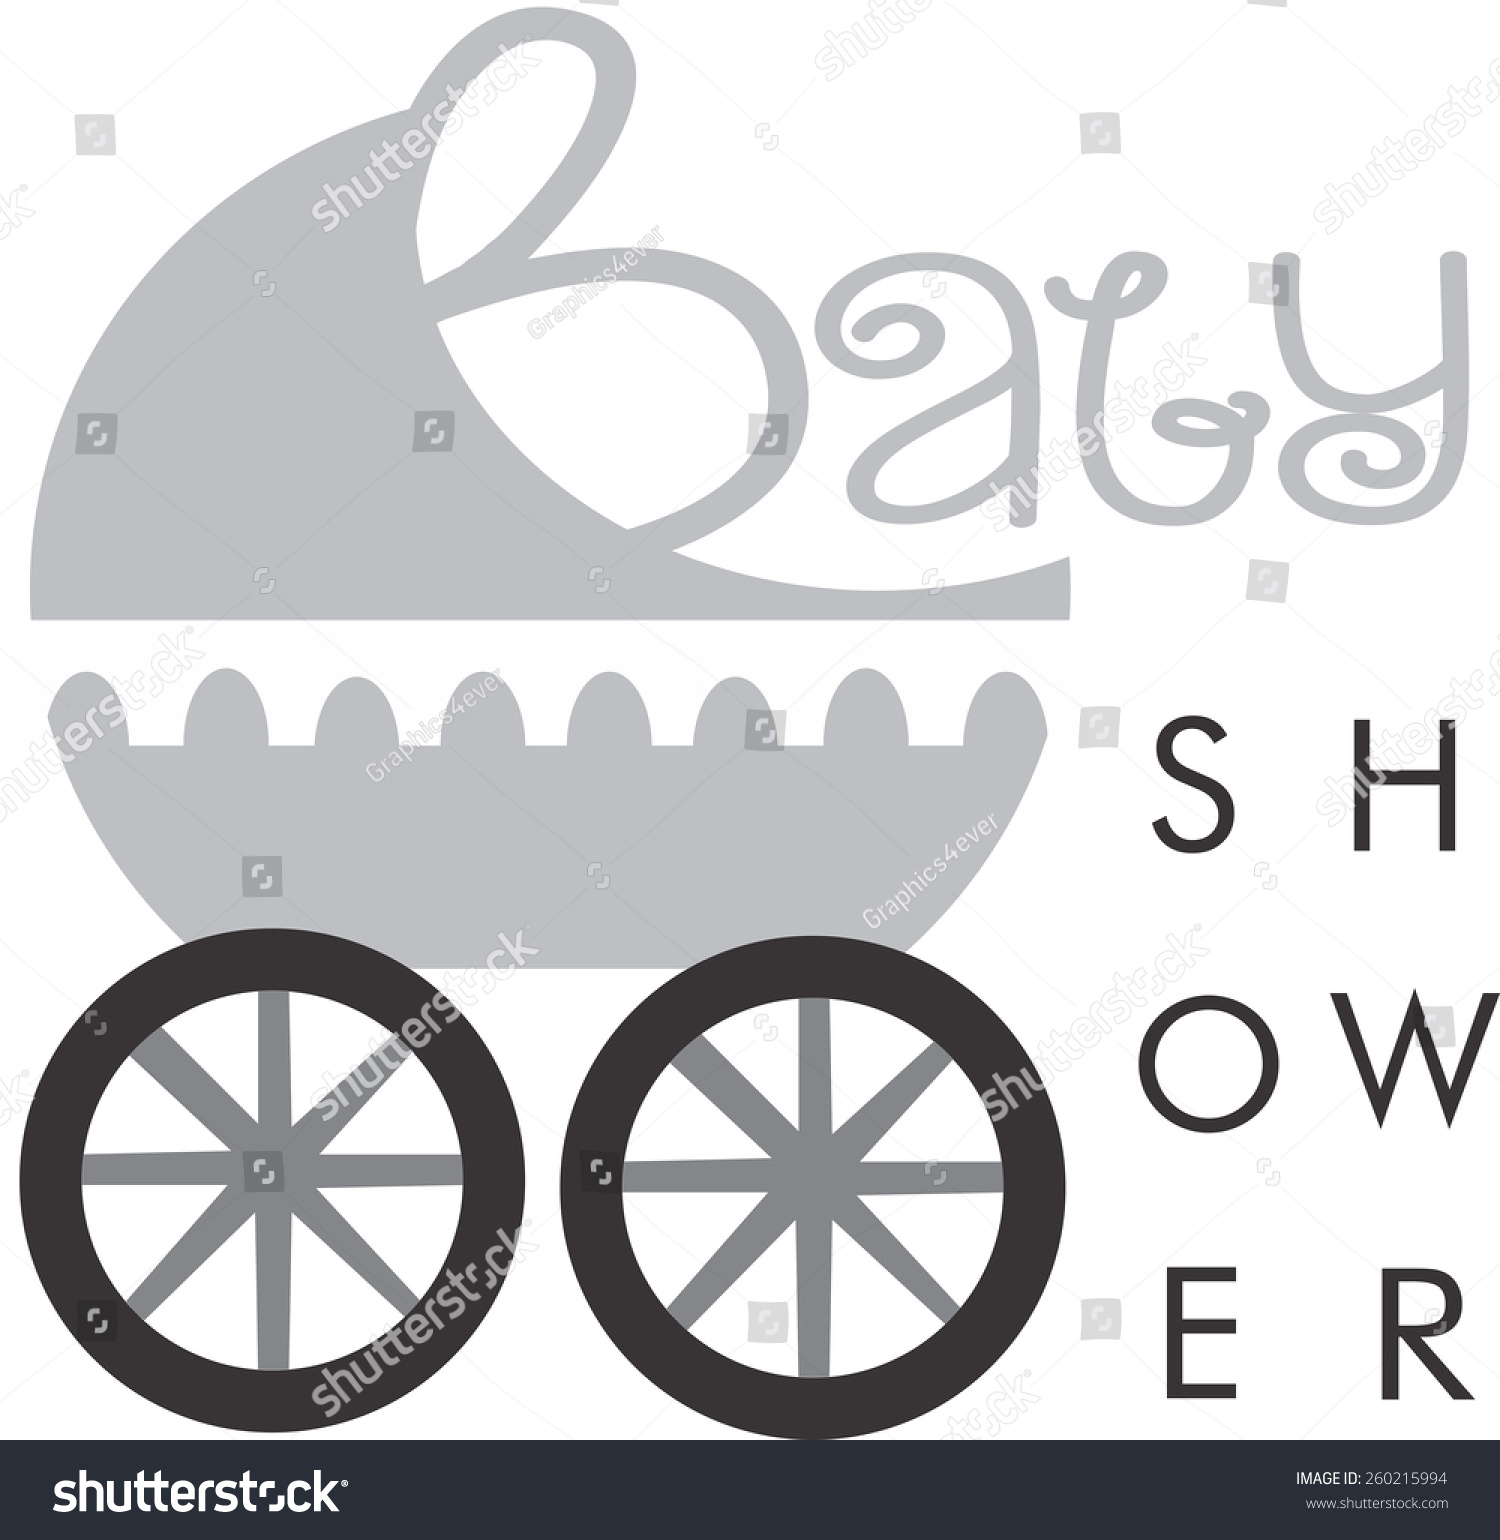 baby shower logo baby depot logo stock vector illustration 260215994